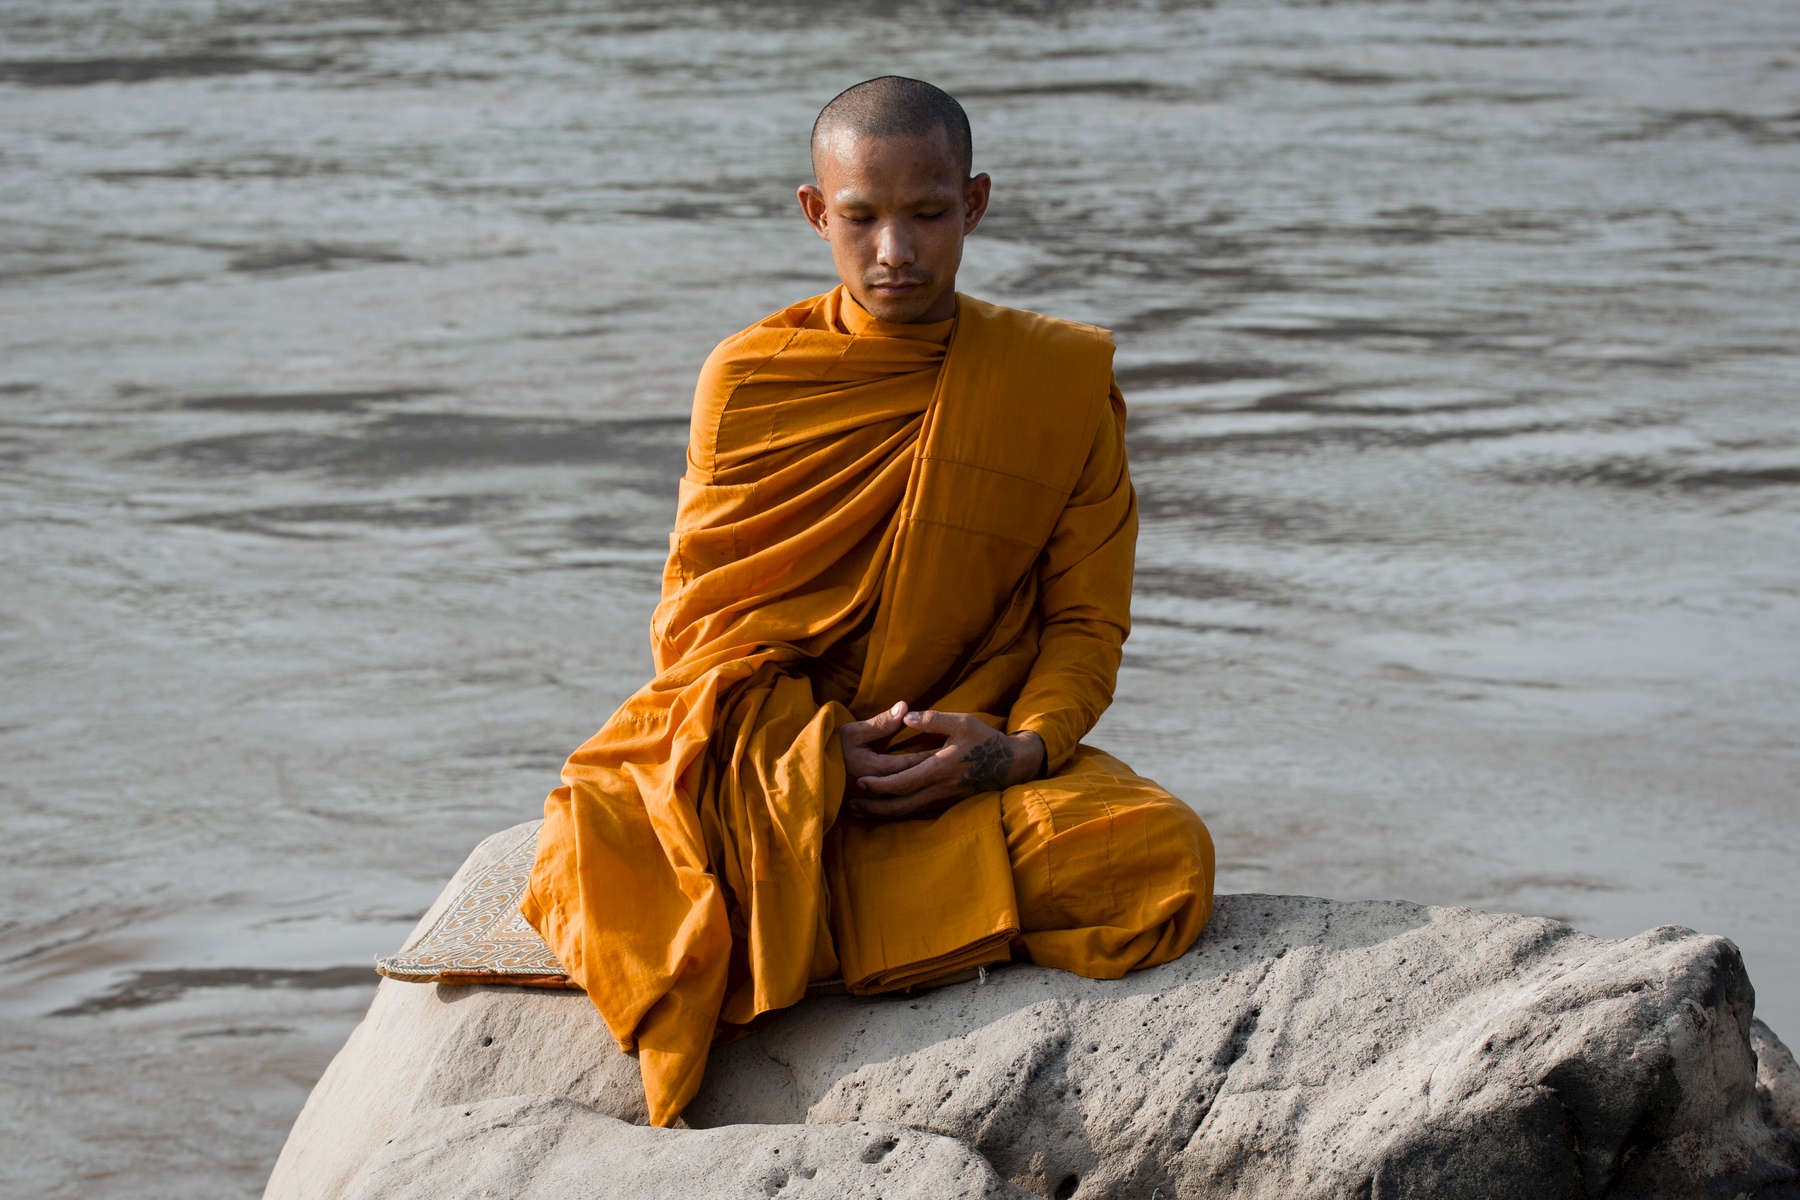 laos-luang-prabang-meditating-monk-mekong-river-photo-by-cyril-eberle-CEB_1085